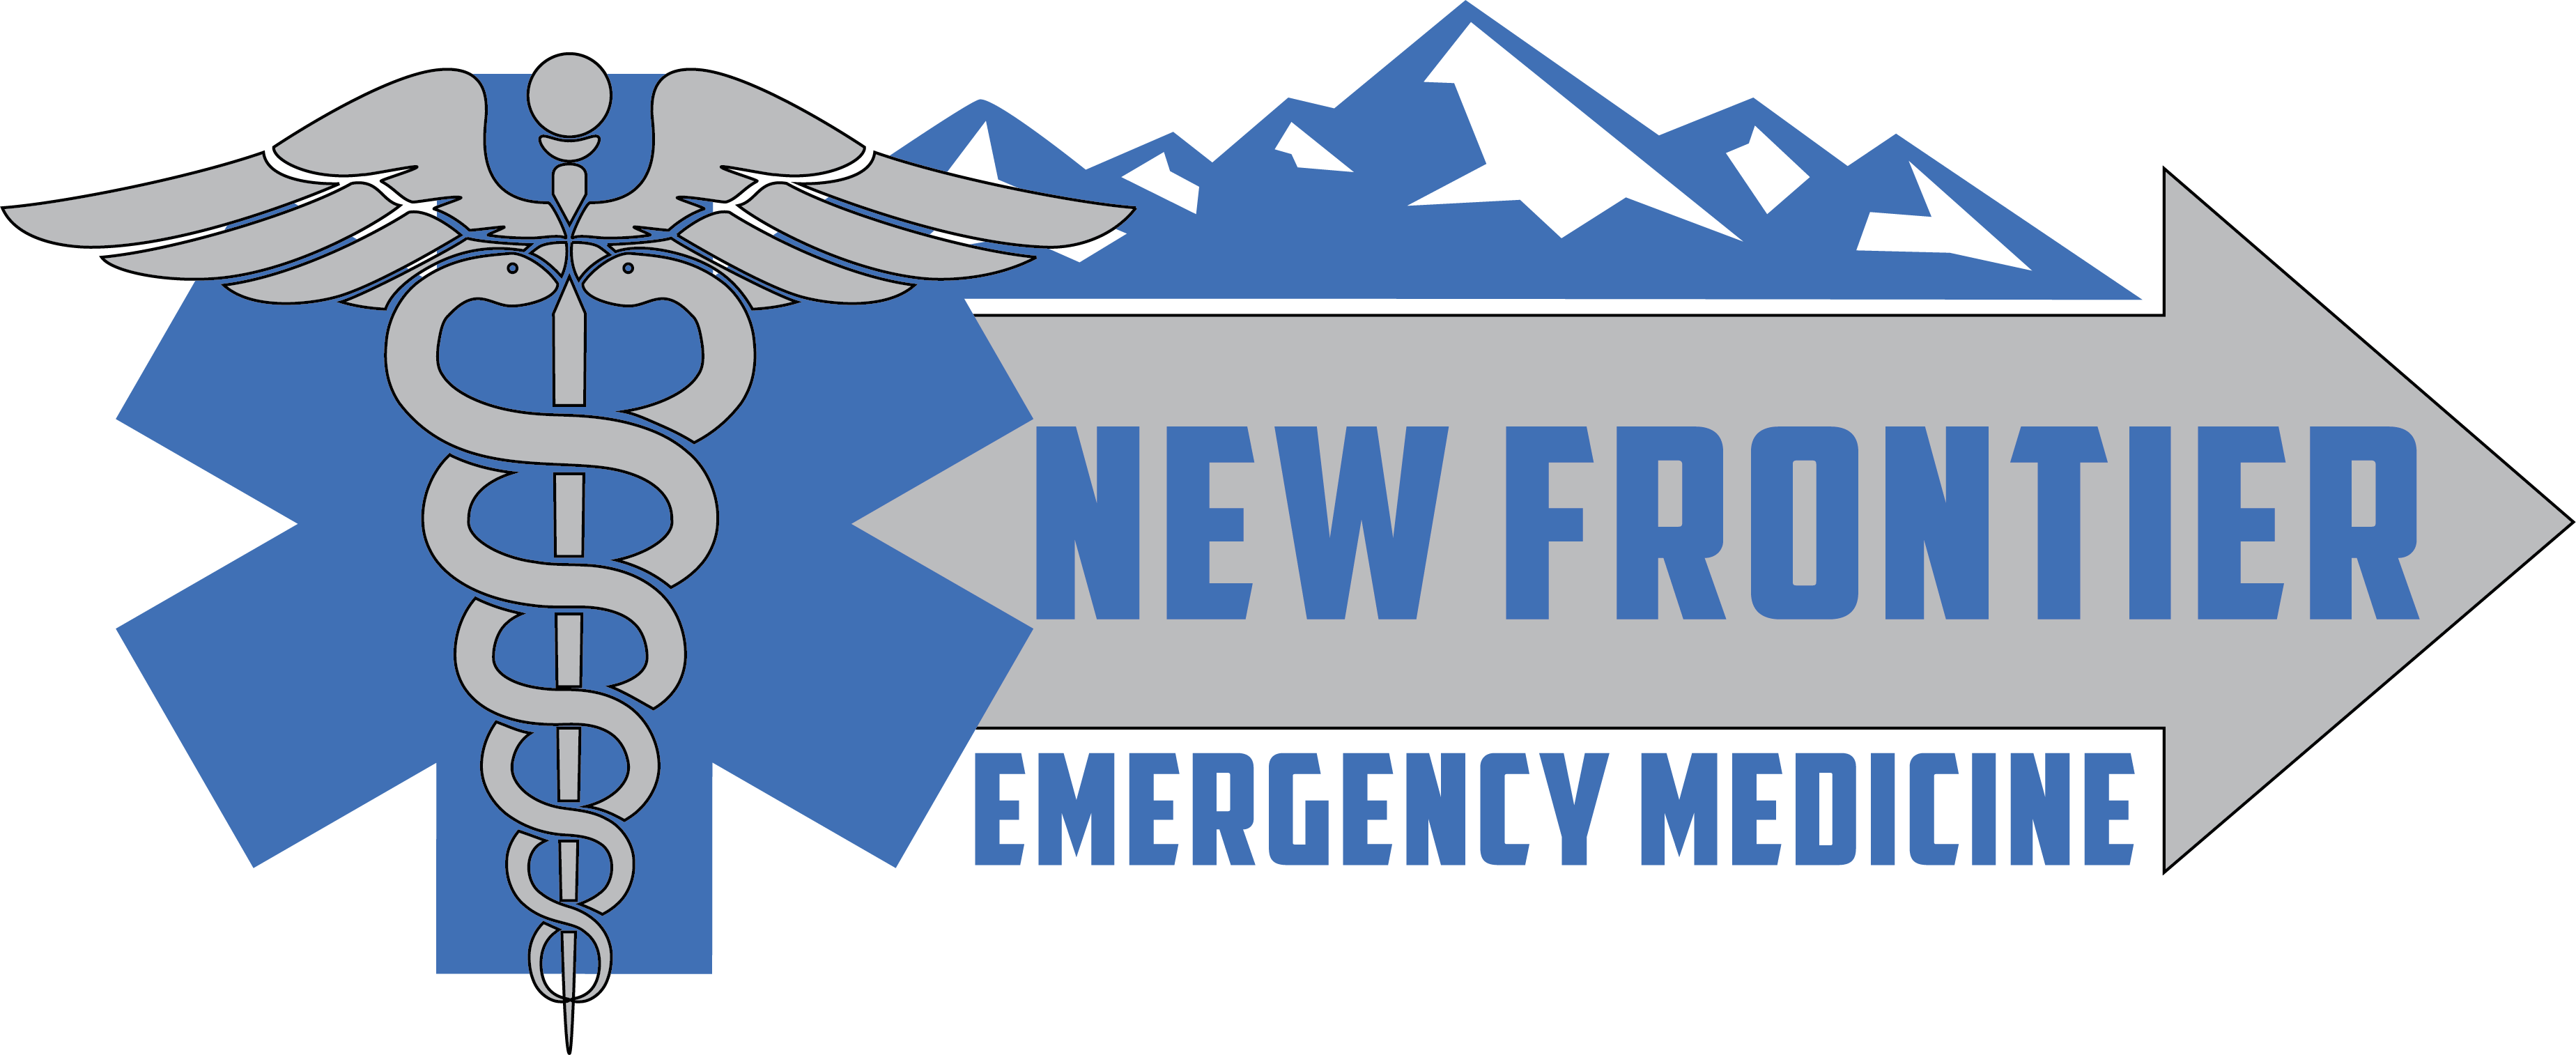 new-frontier-emergency-medicine-symposium-logo